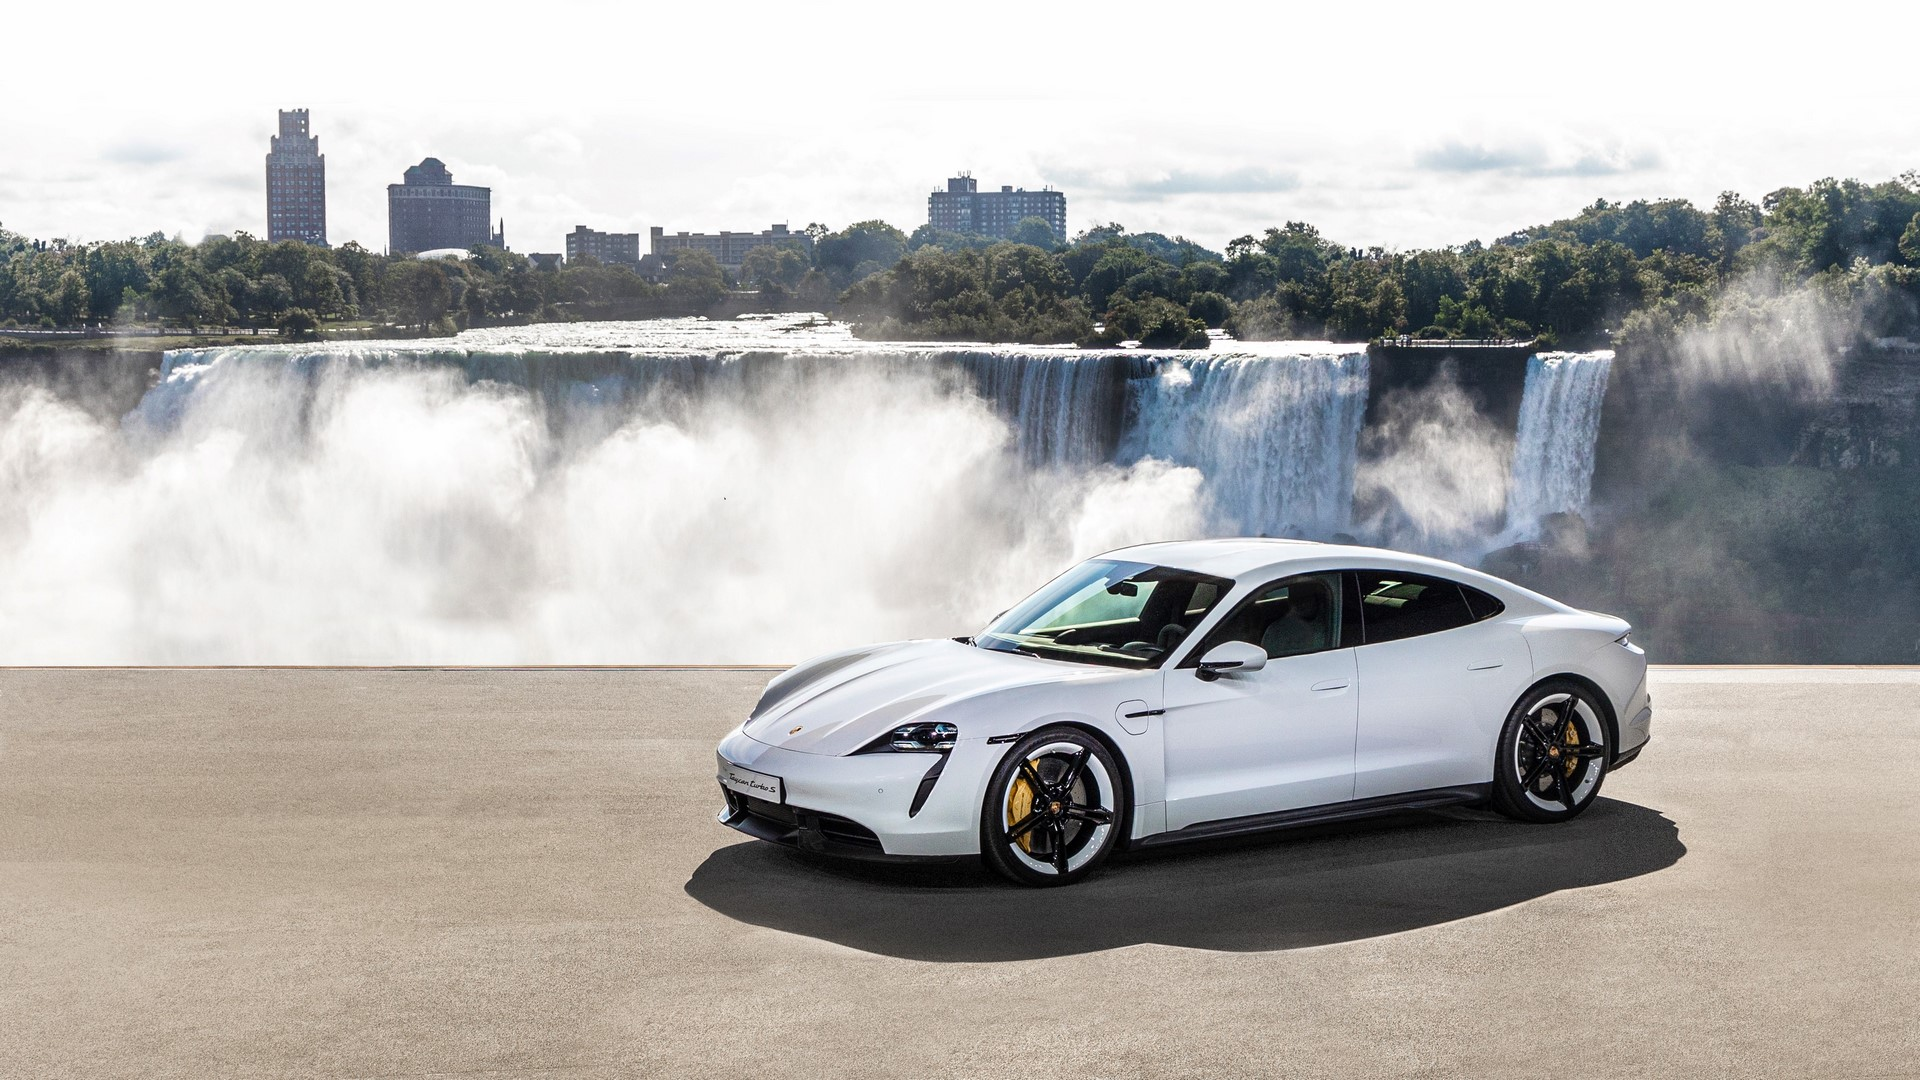 high_world_premiere_of_the_new_porsche_taycan_in_north_america_2019_porsche_ag